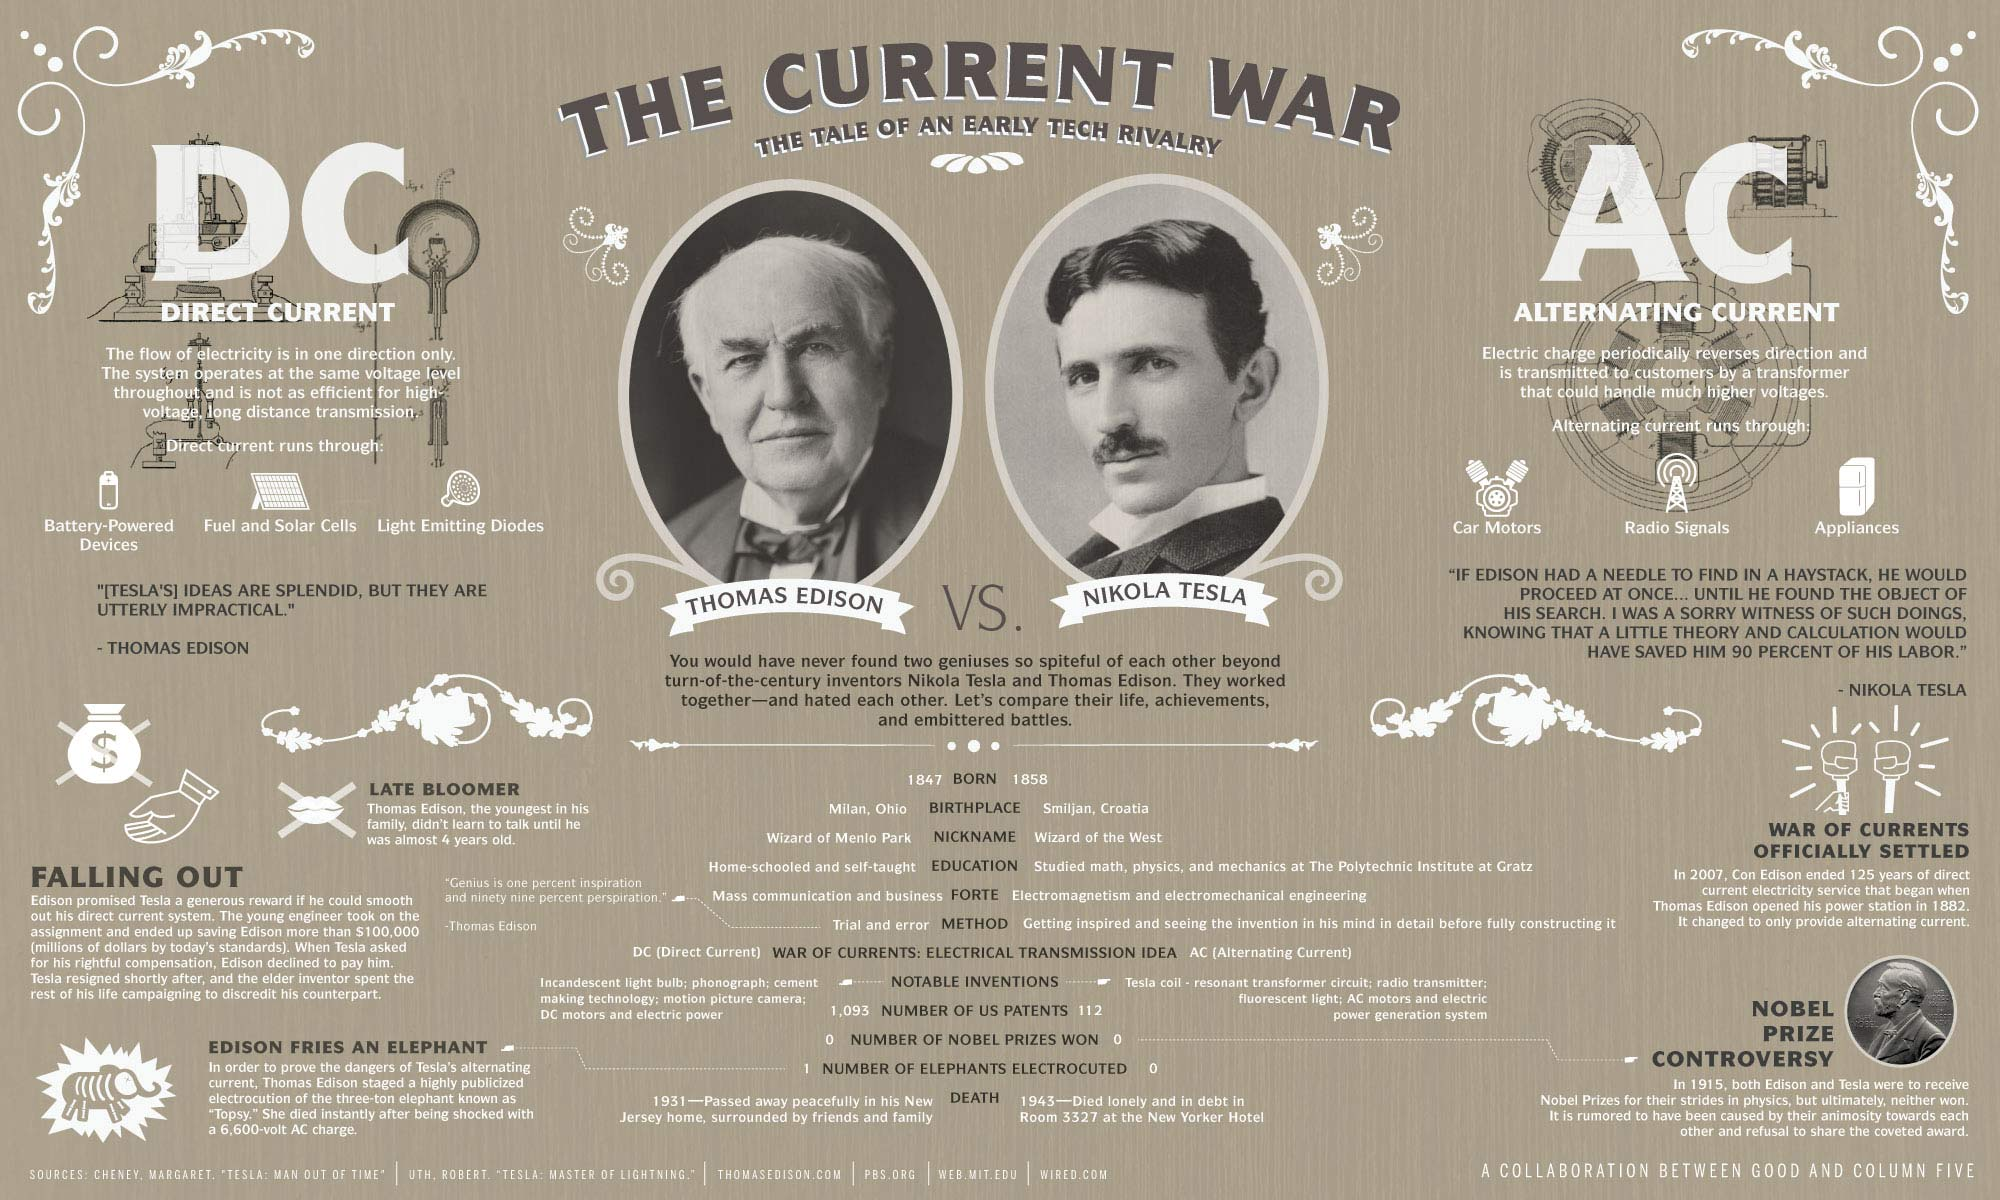 Film - The Current War - date e dati - Nicholas Tesla vs Thomas Edison